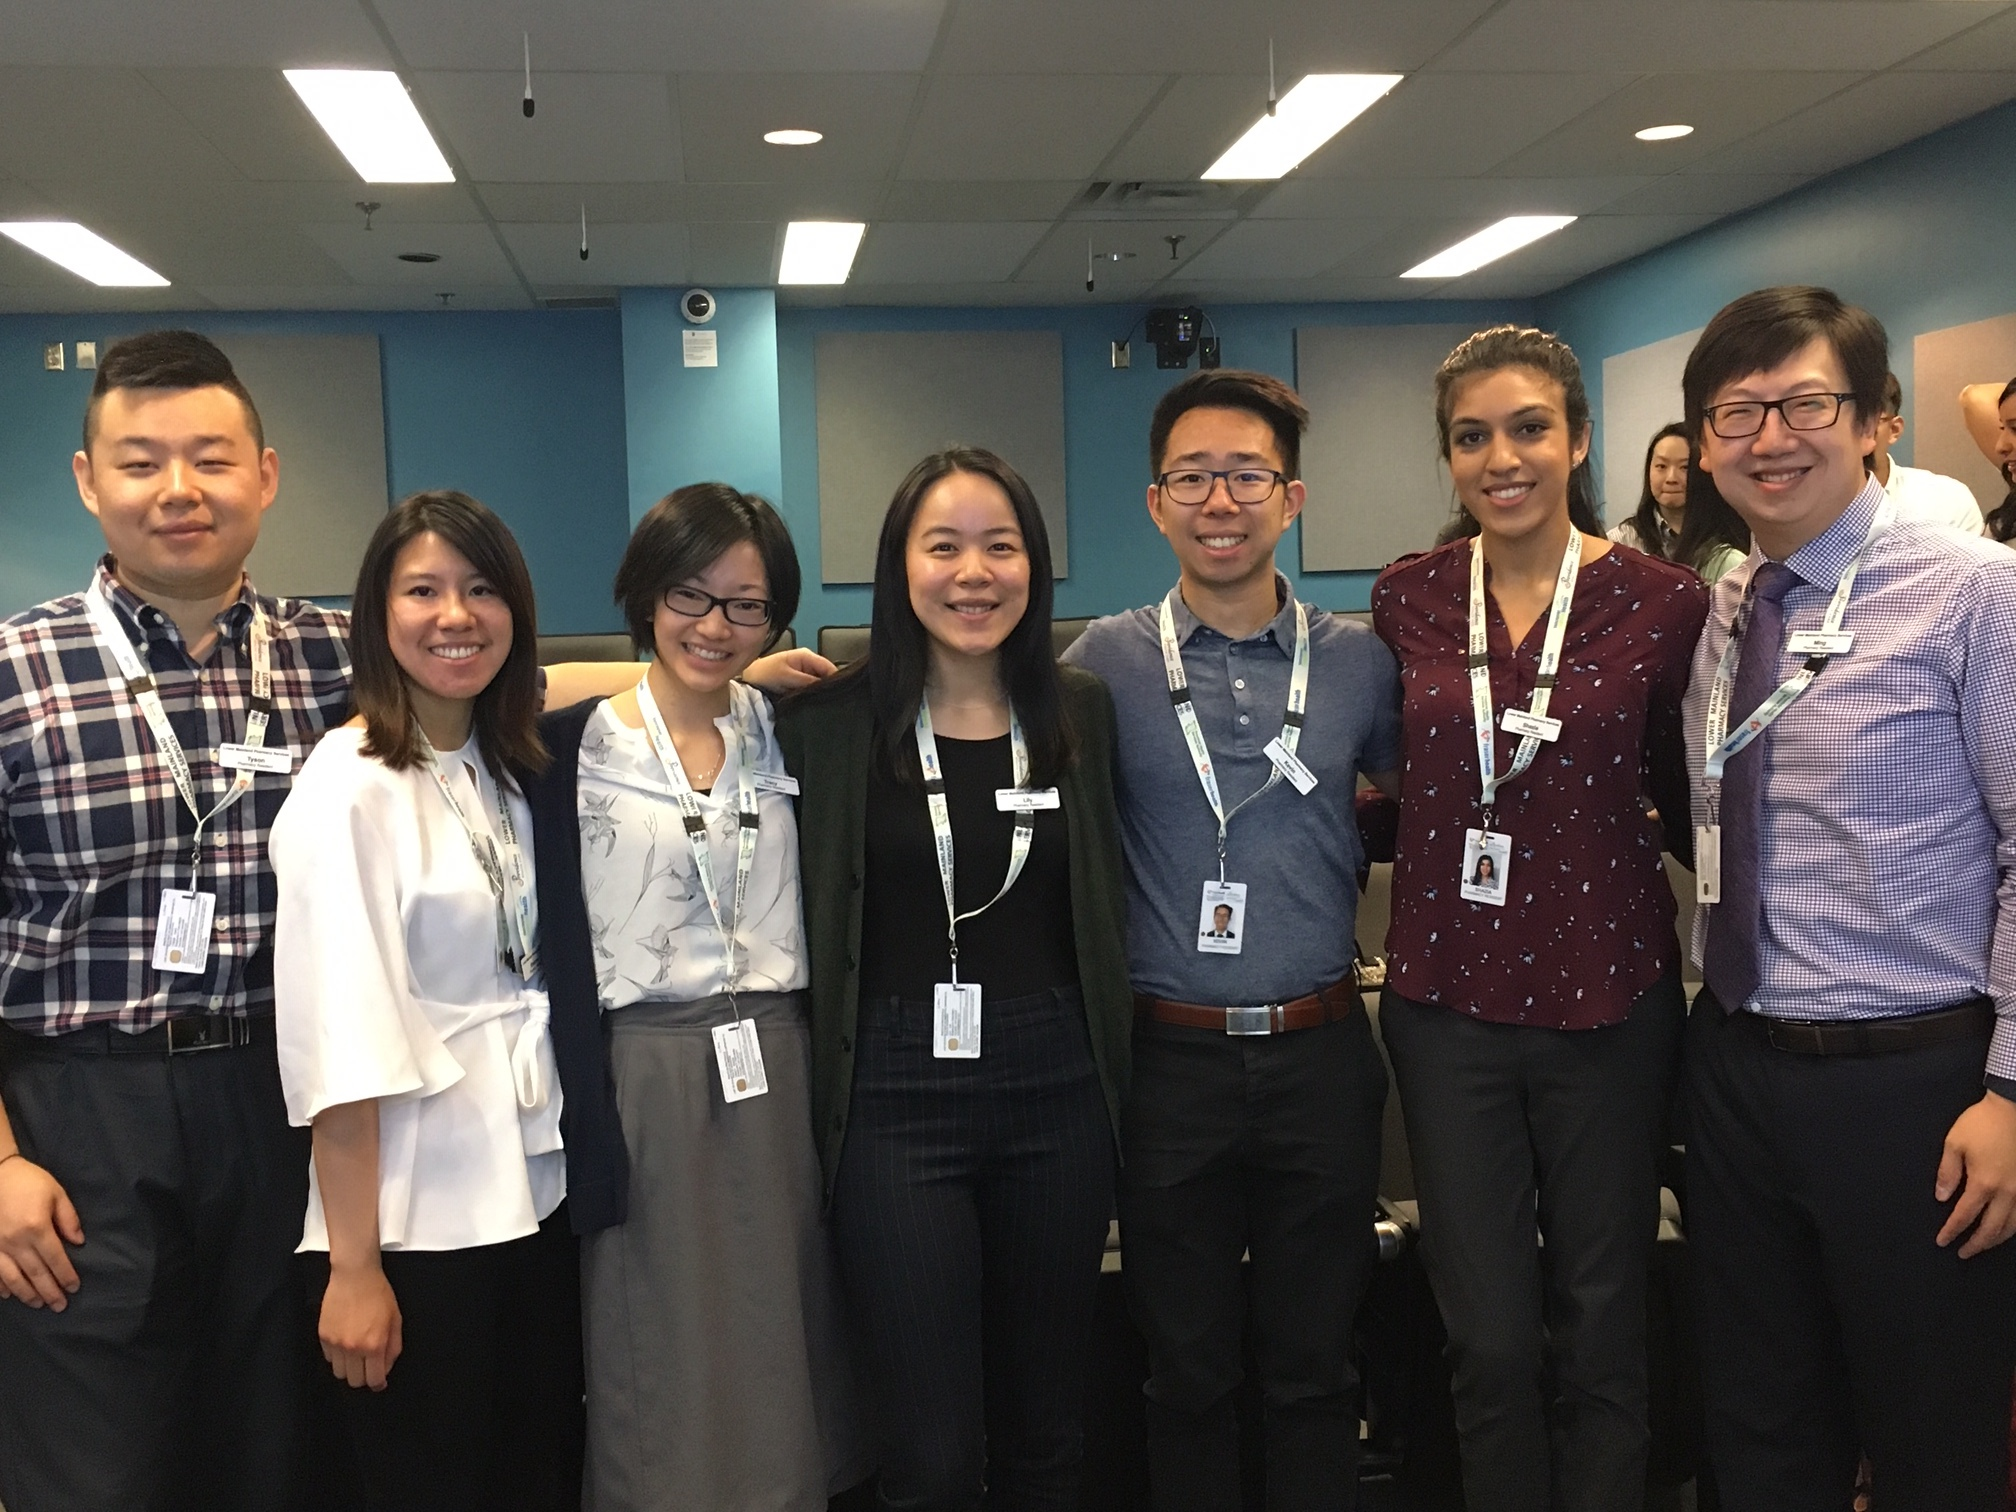 VGH / RH Pod (from left to right: Tyson, Shannon, Tracy, Lily, Kevin, Shazia and Ming)